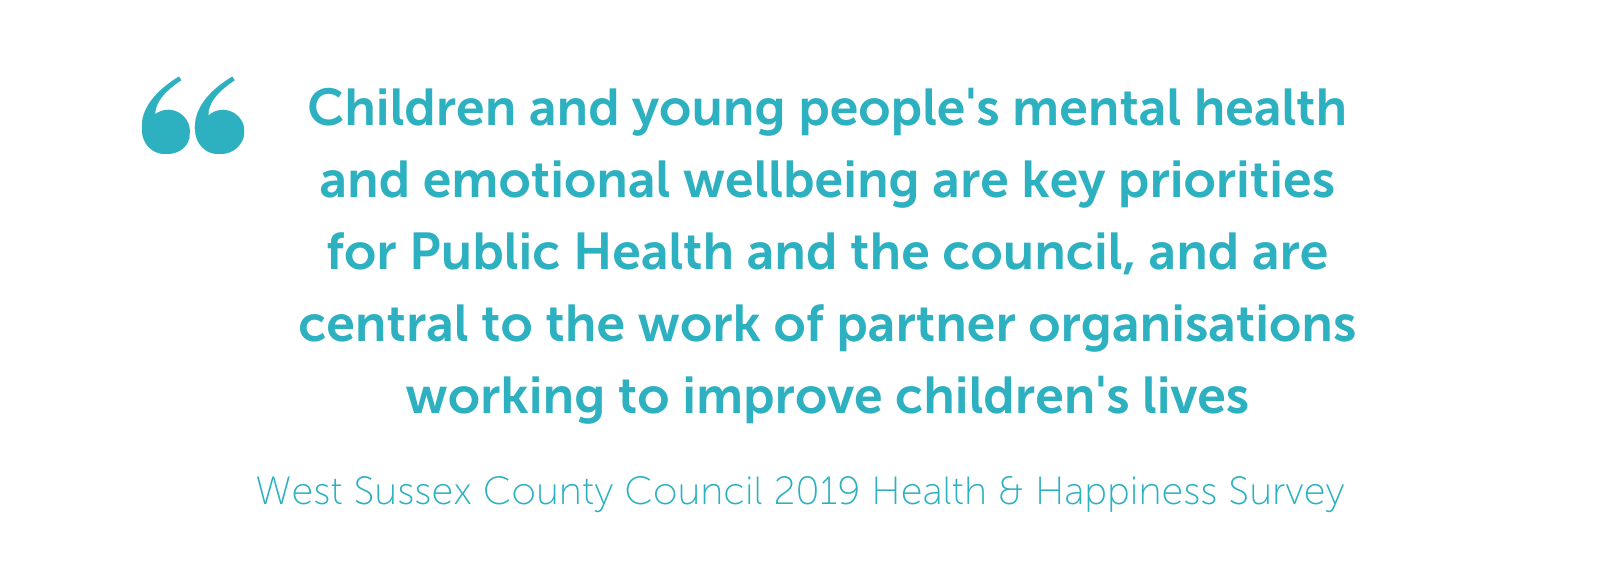 Children and young people's mental health and emotional wellbeing are key priorities for Public Health and the council, and are central to the work of partner organisations working to improve children's lives - West Sussex County Council